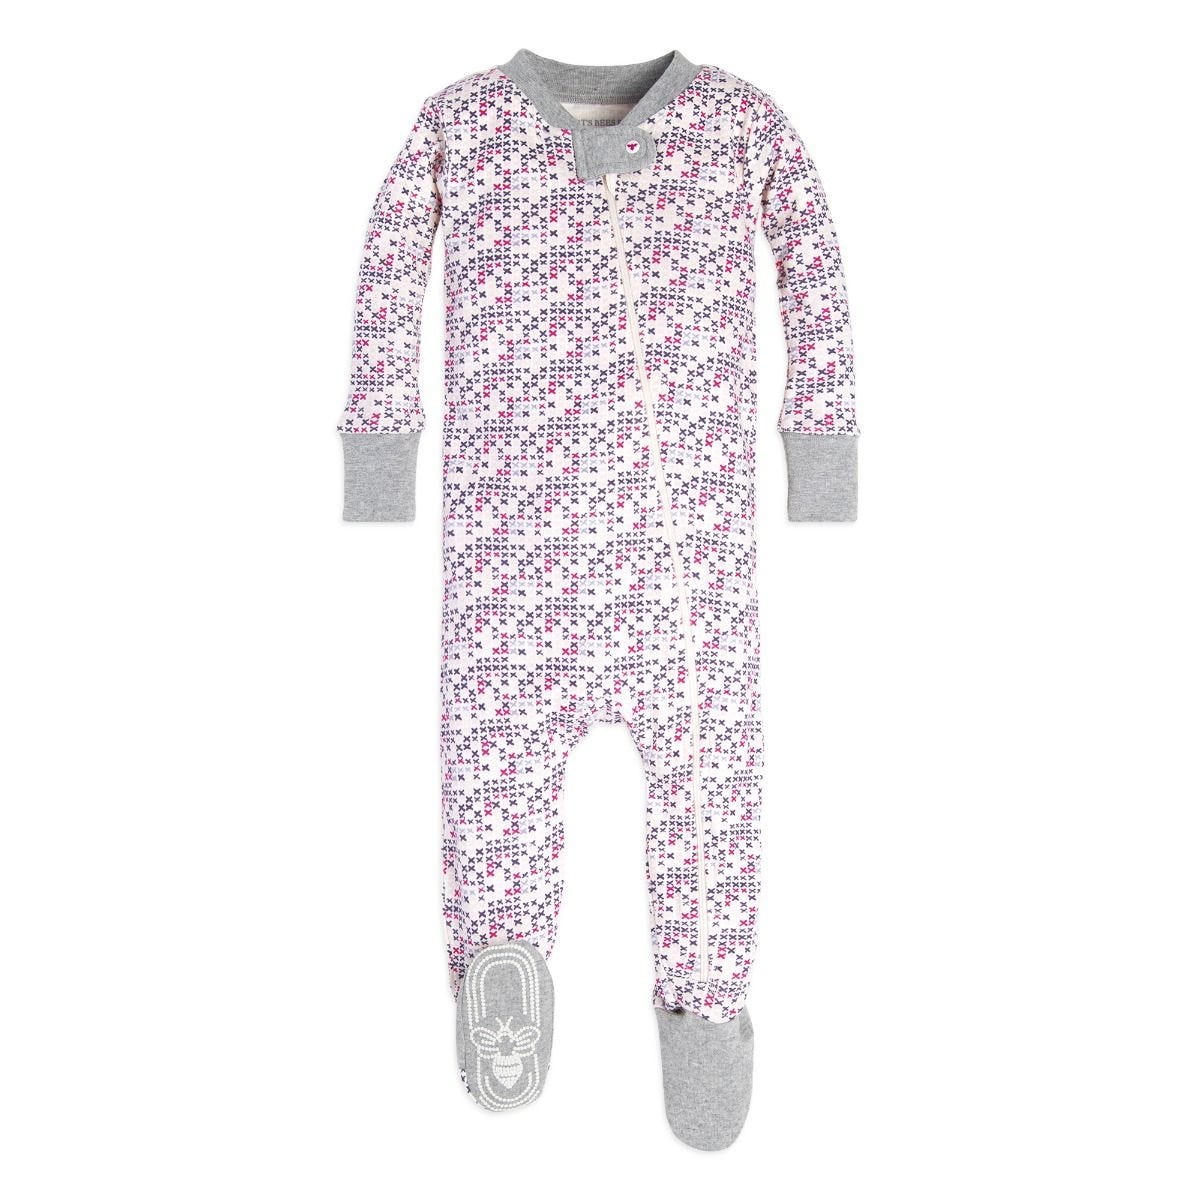 f04055b02894 Micro Cross Stitch Organic Baby Zip Up Footed Pajamas